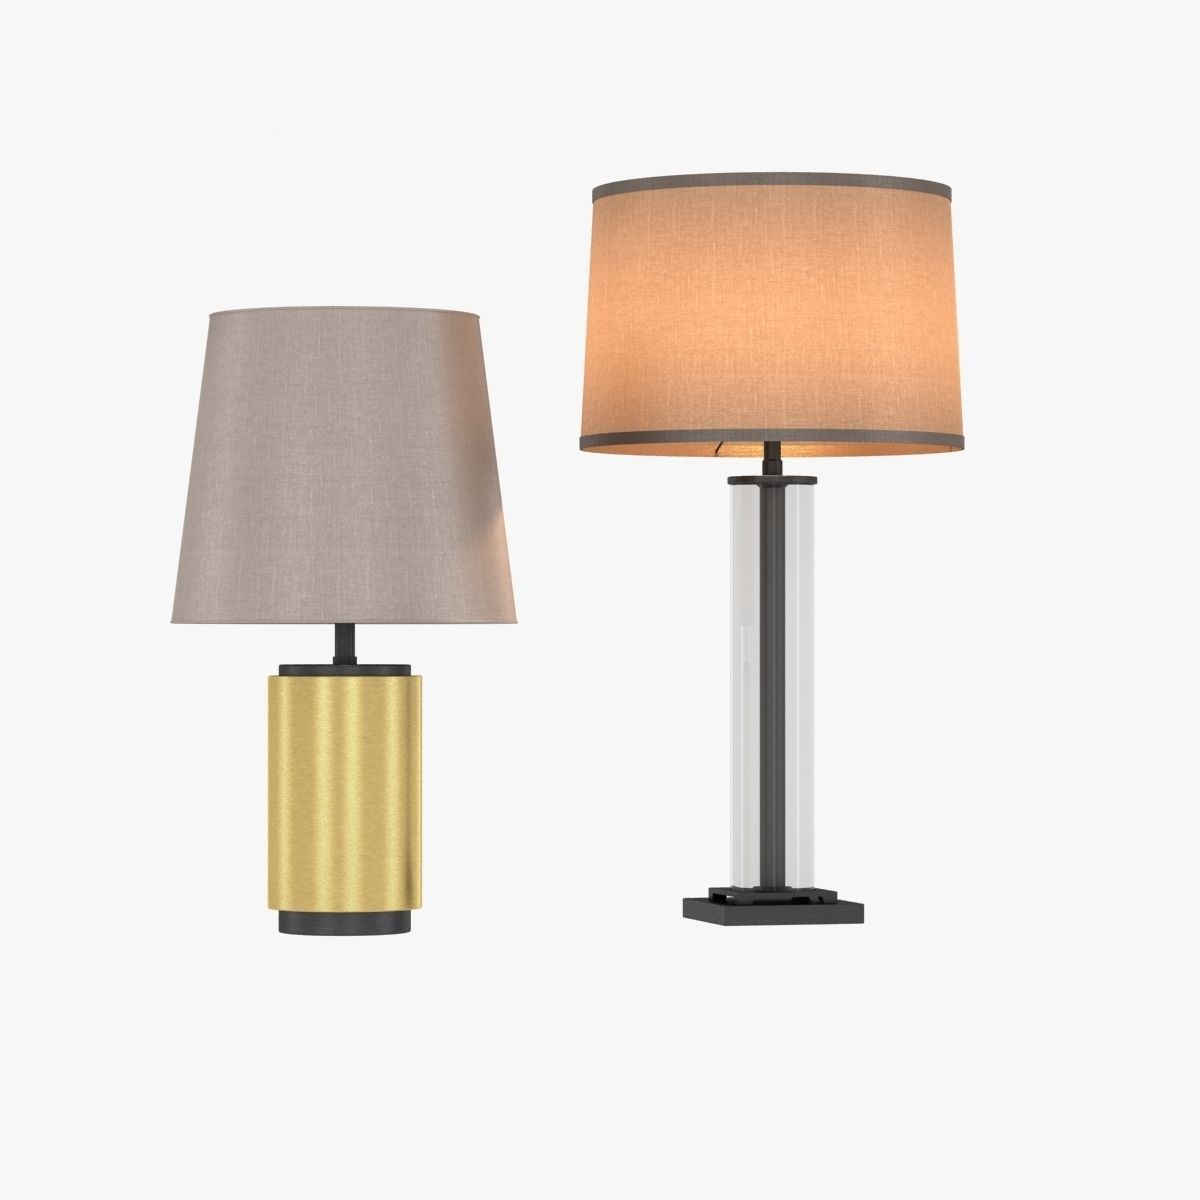 Restoration Hardware French Column Glass Table Lamp 3d Model Max